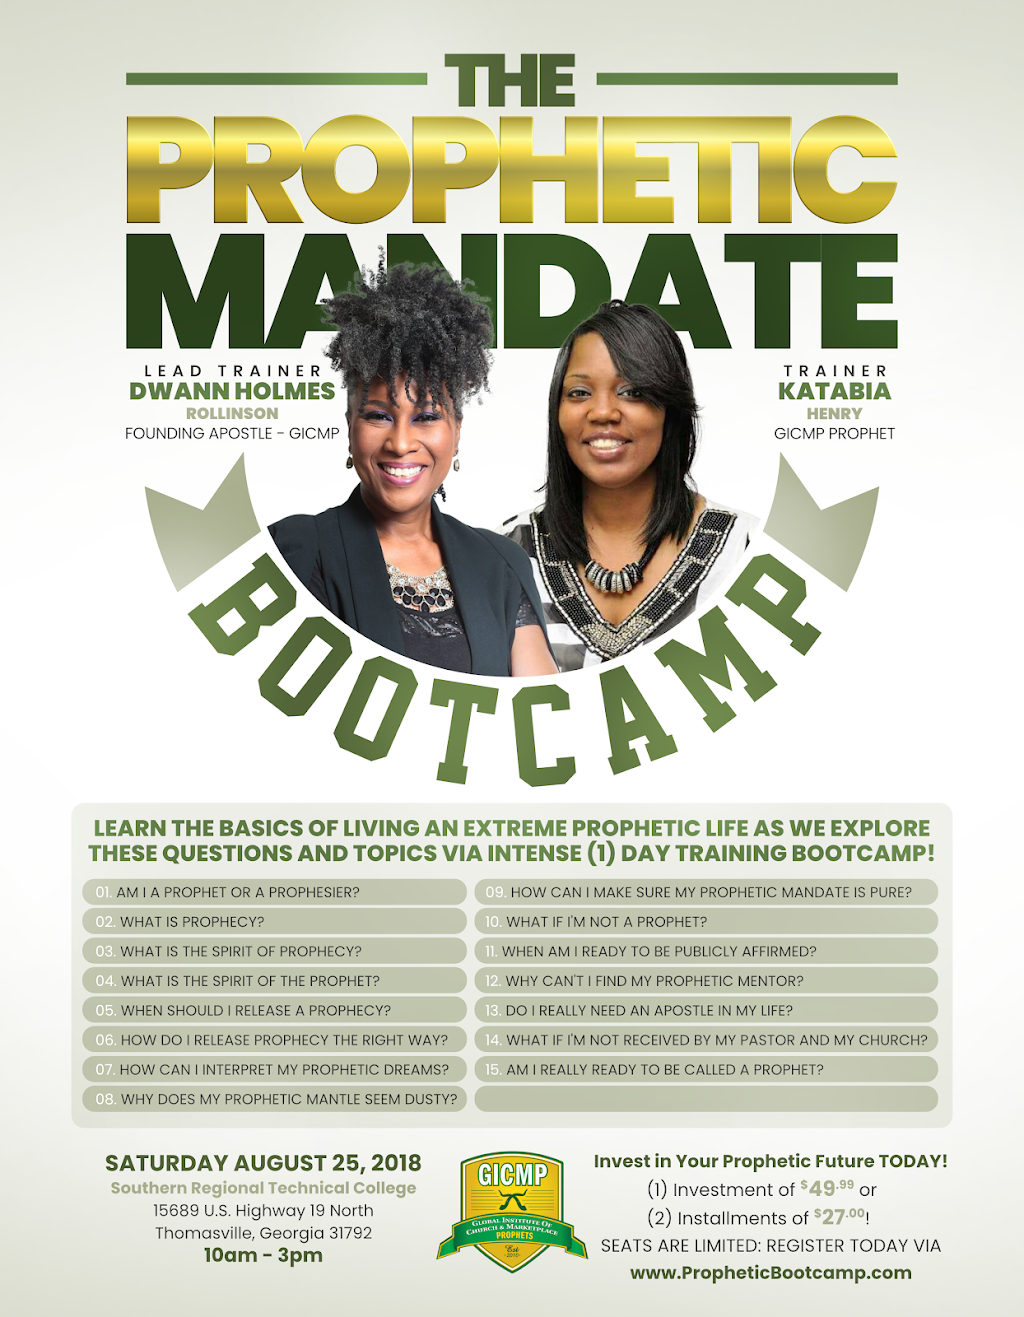 THE PROPHETIC MANDATE - THOMASVILLE GEORGIA - PROPHETIC TRAINING